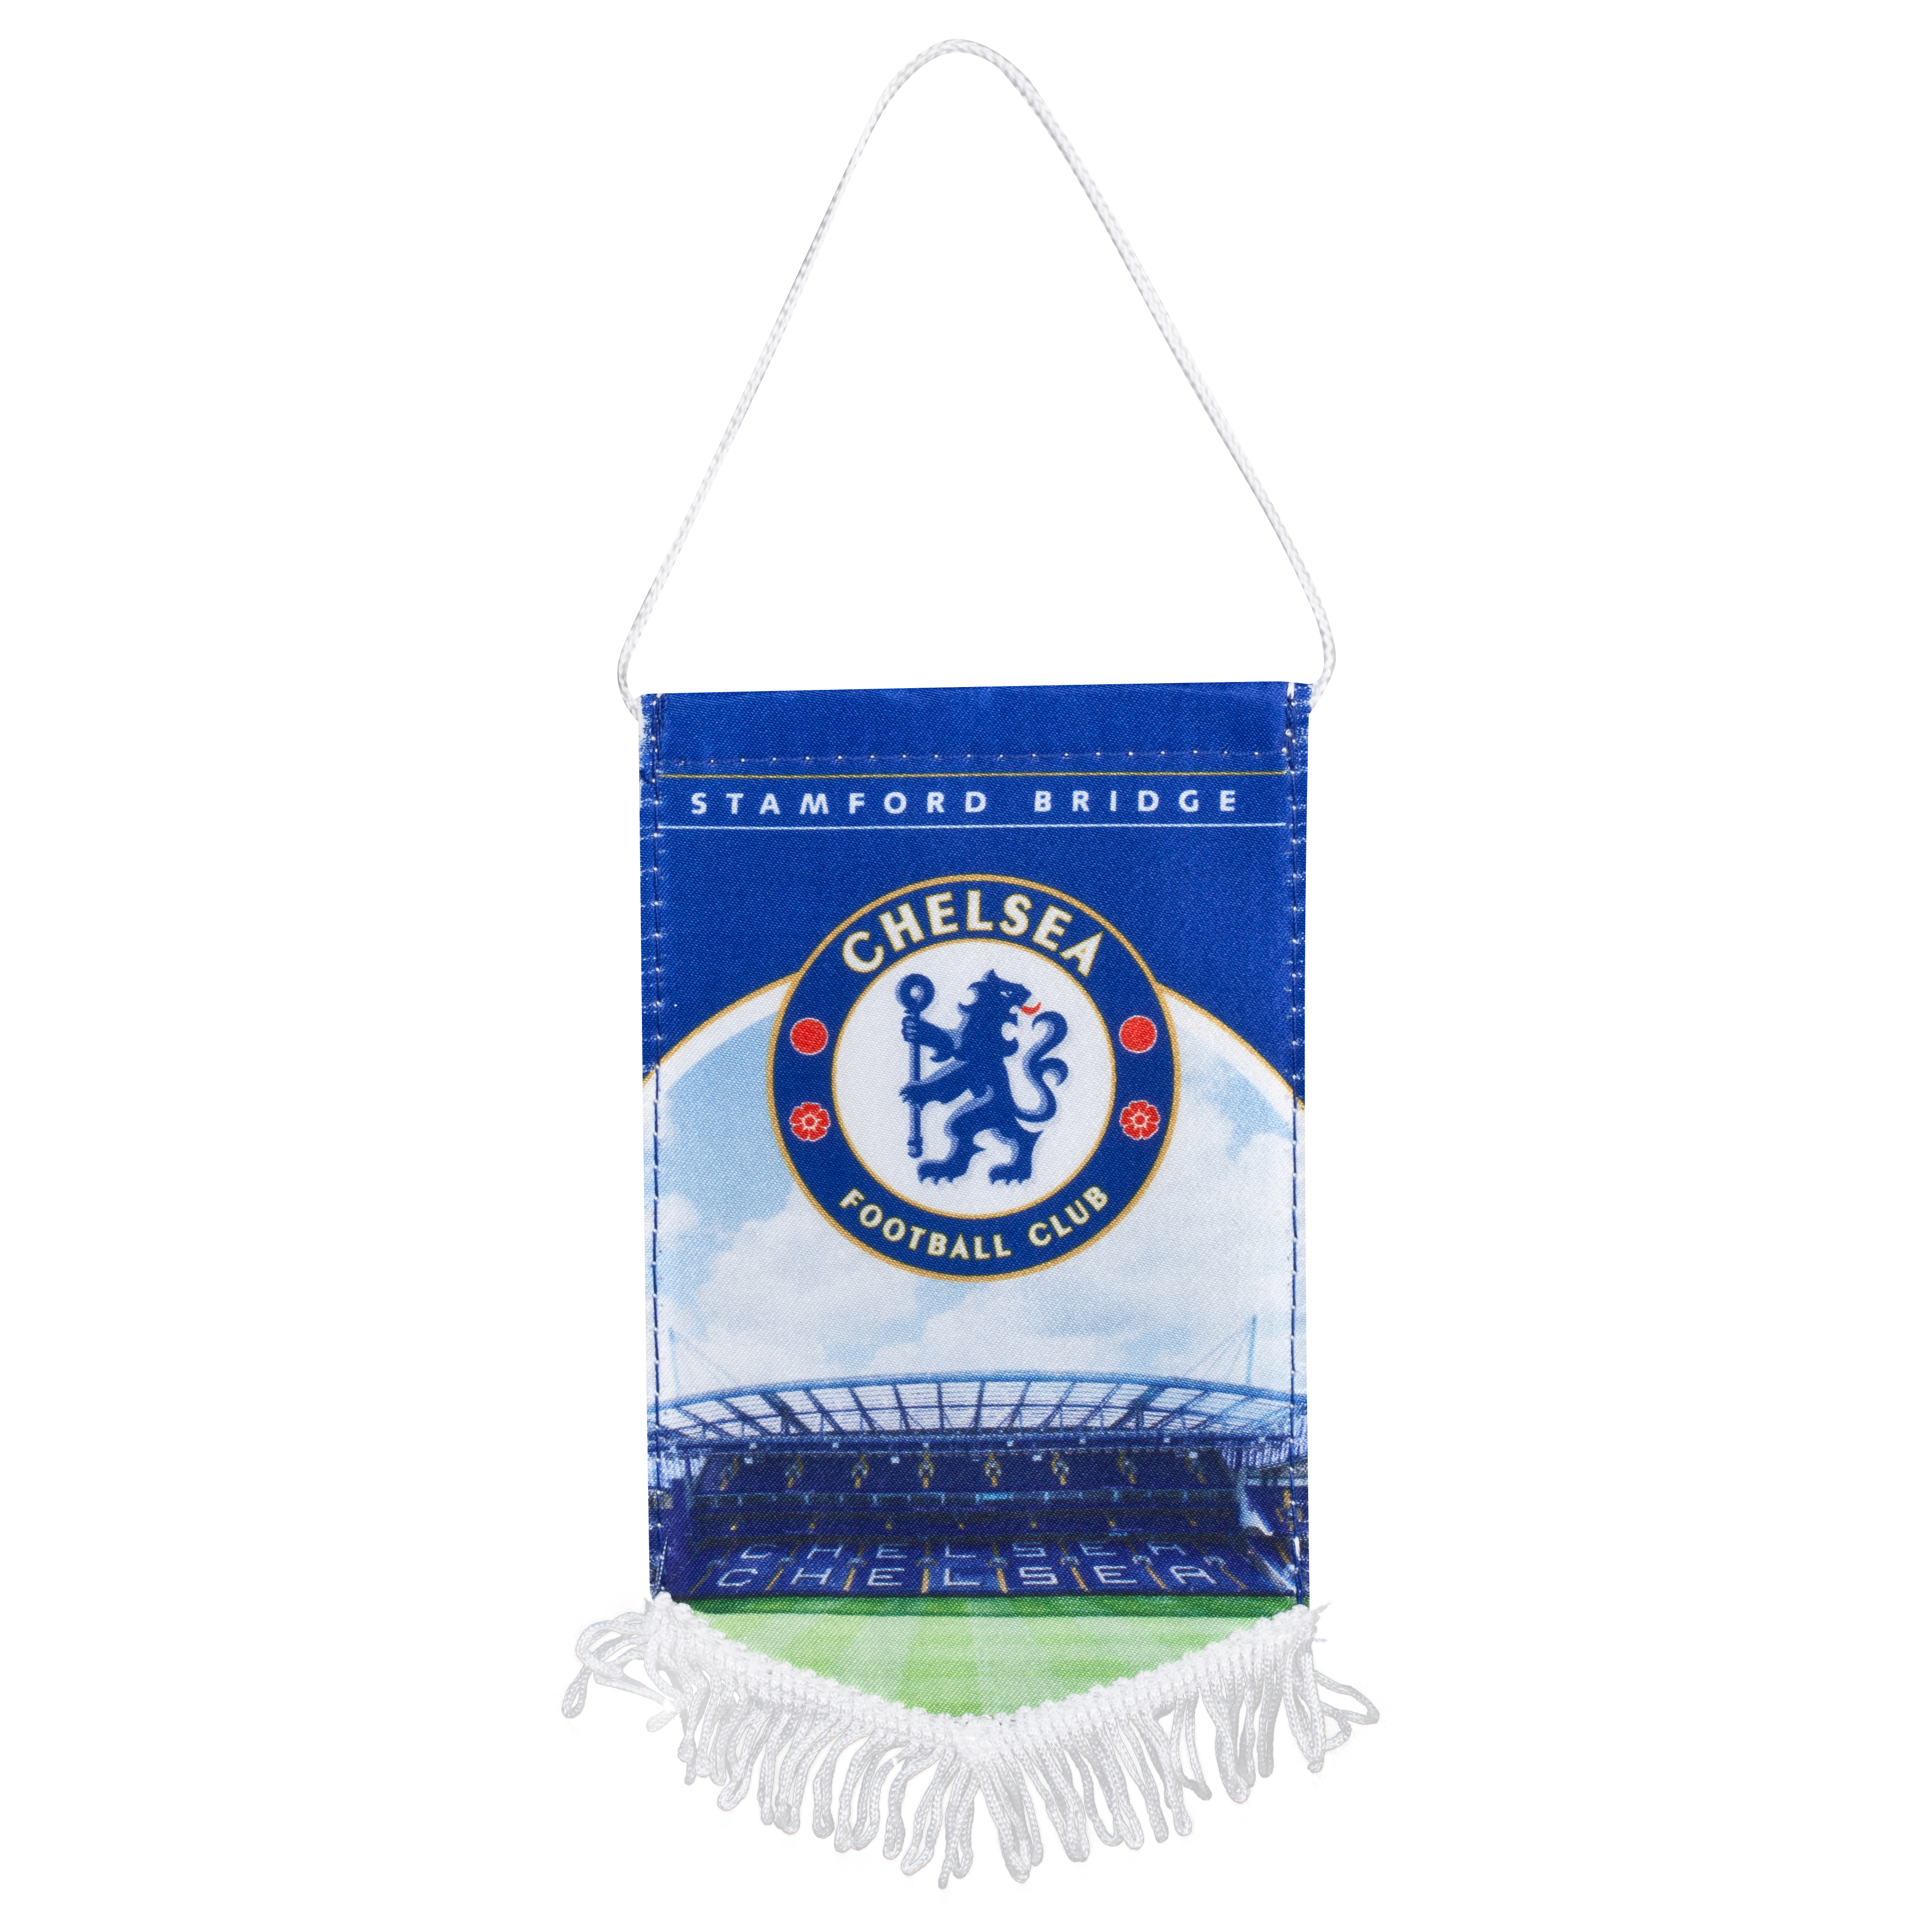 Image of Chelsea Stadium Pennant, Blue